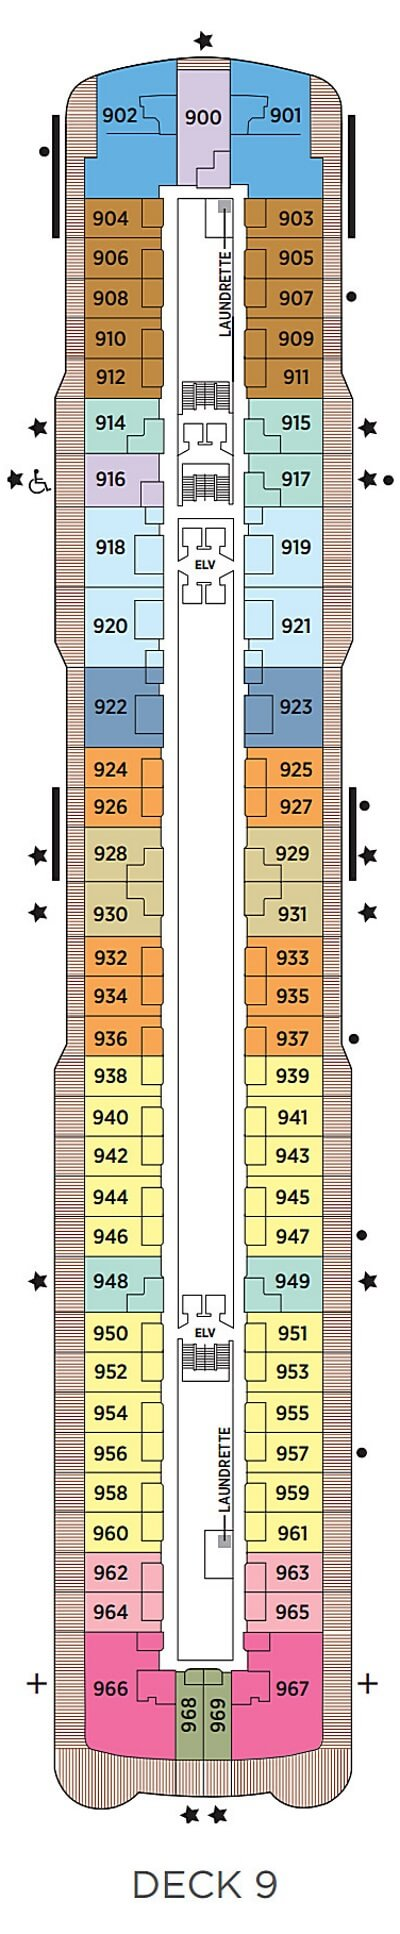 Seven Seas Explorer Deck 9 layout